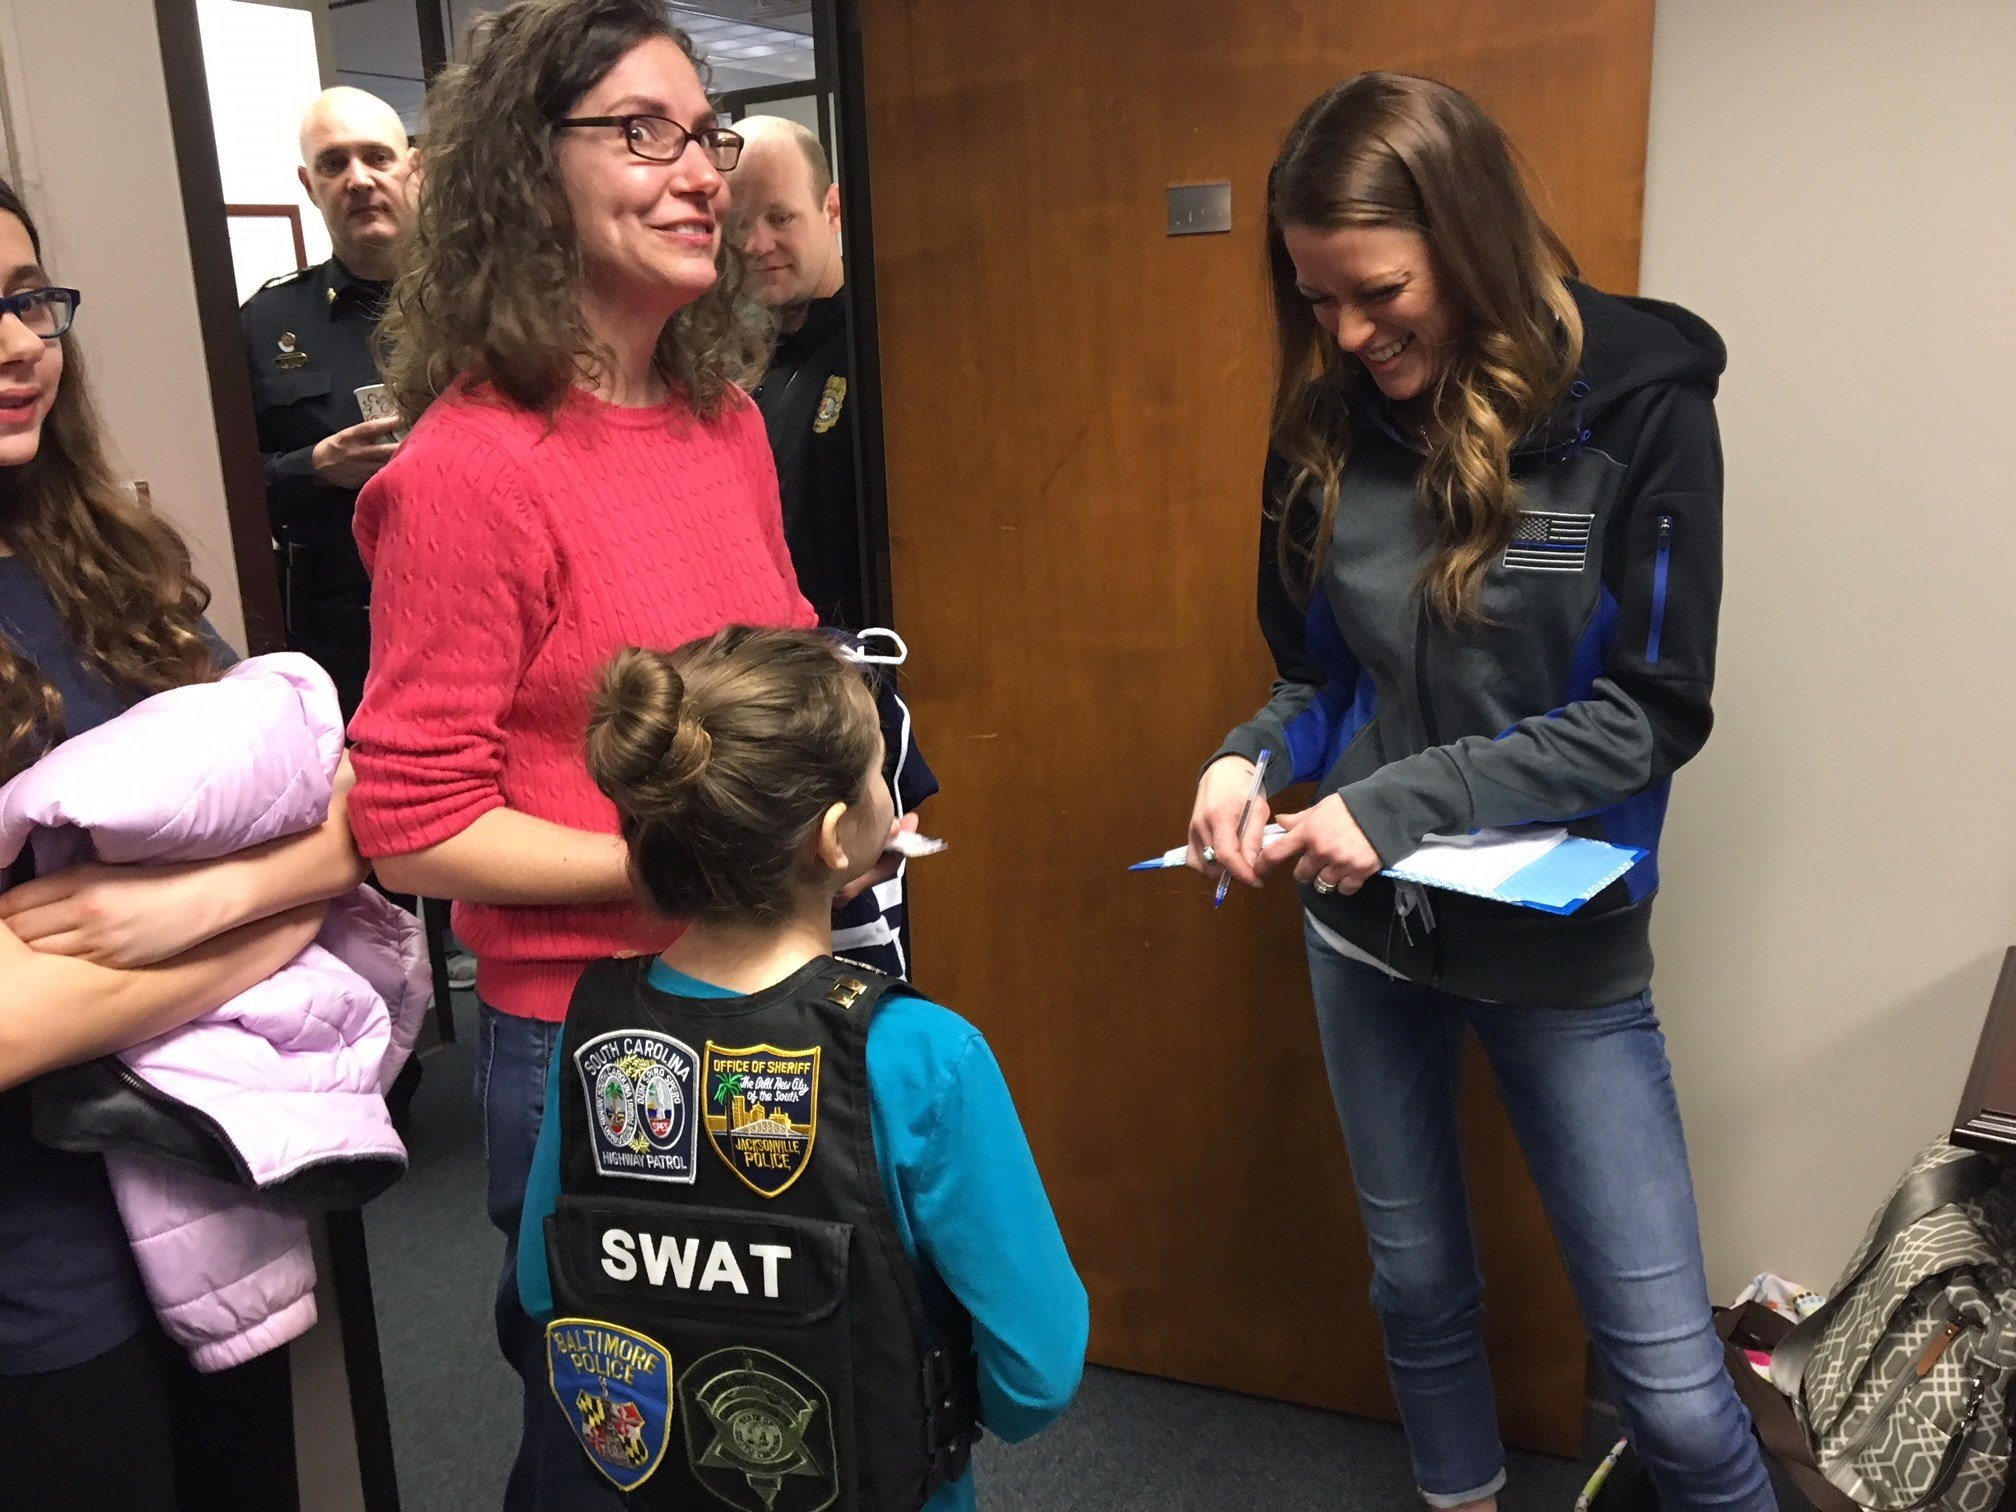 Laurie and Abby meet Meghan Jacobs, wife of fallen Greenville Police Officer Allen Jacobs (FOX Carolina: 3/8/18).